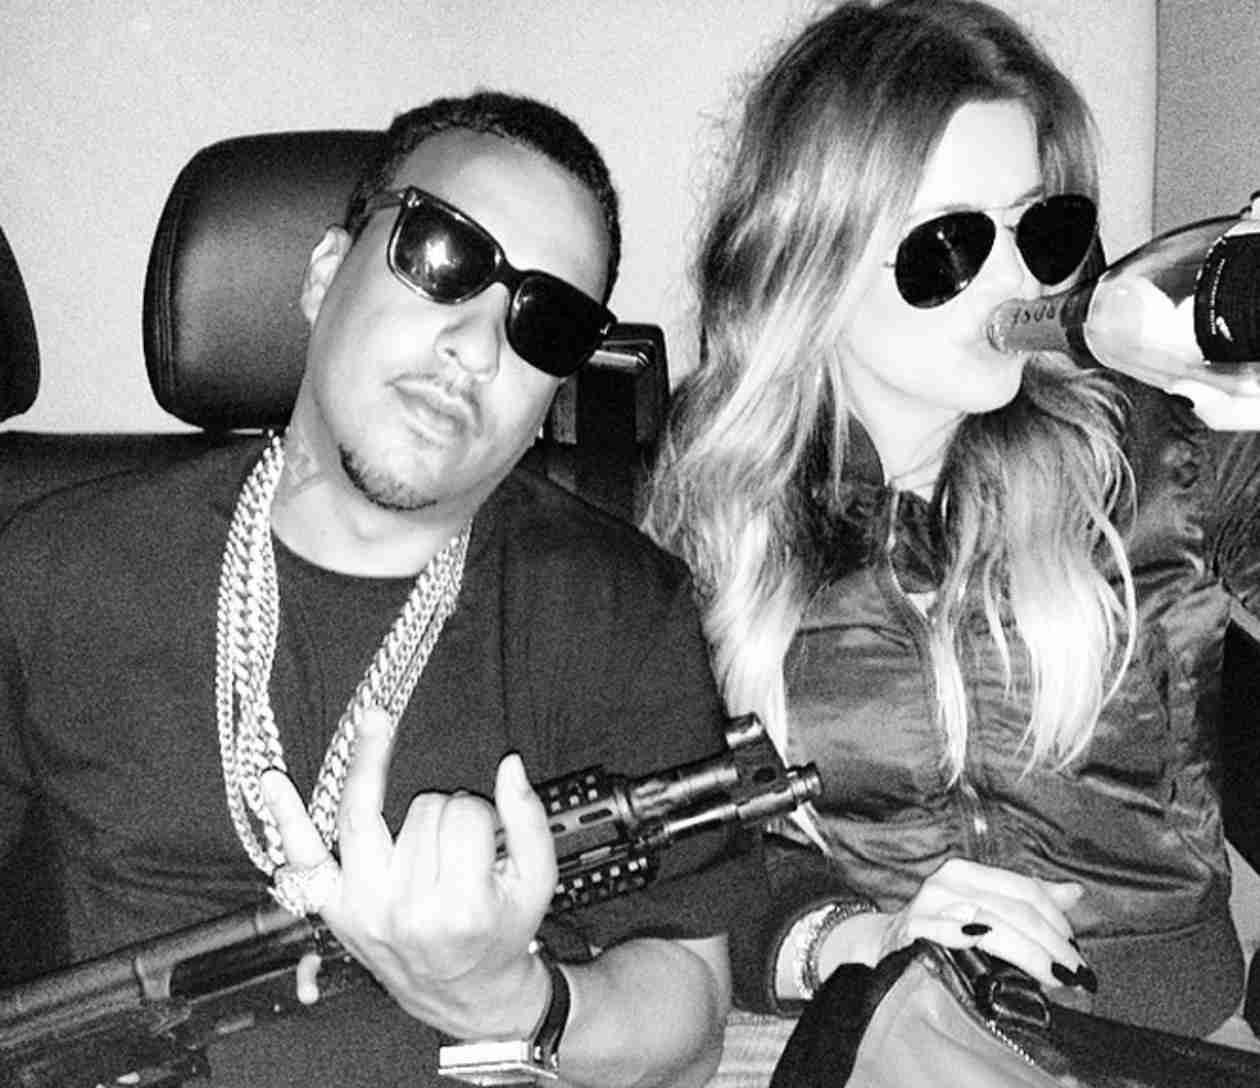 Expert: Khloe Kardashian Has Gained 35 Pounds Since Beginning Relationship With French Montana